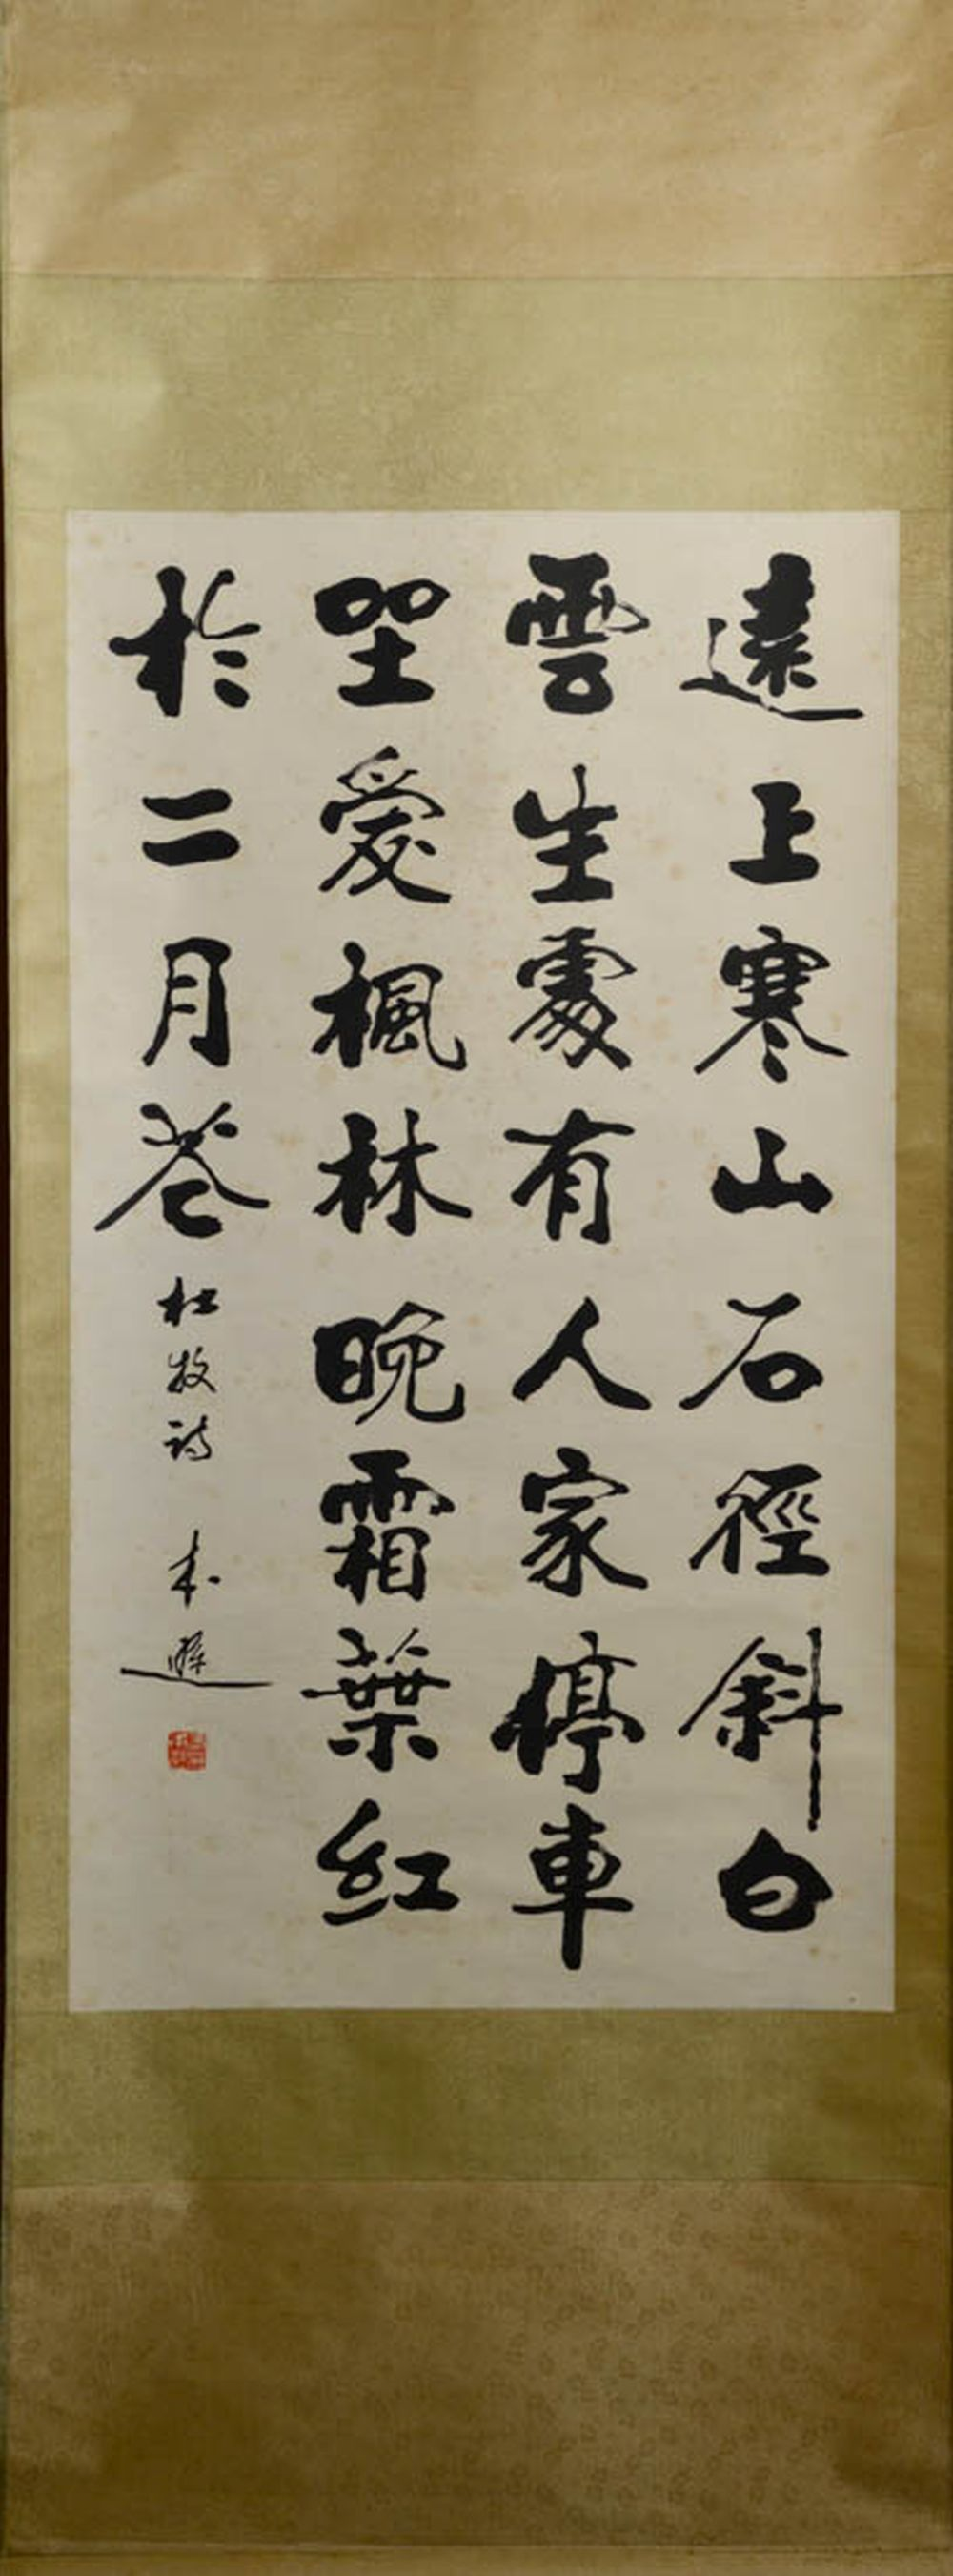 Chinese Water Color Scroll Painting - Calligraphy Poem